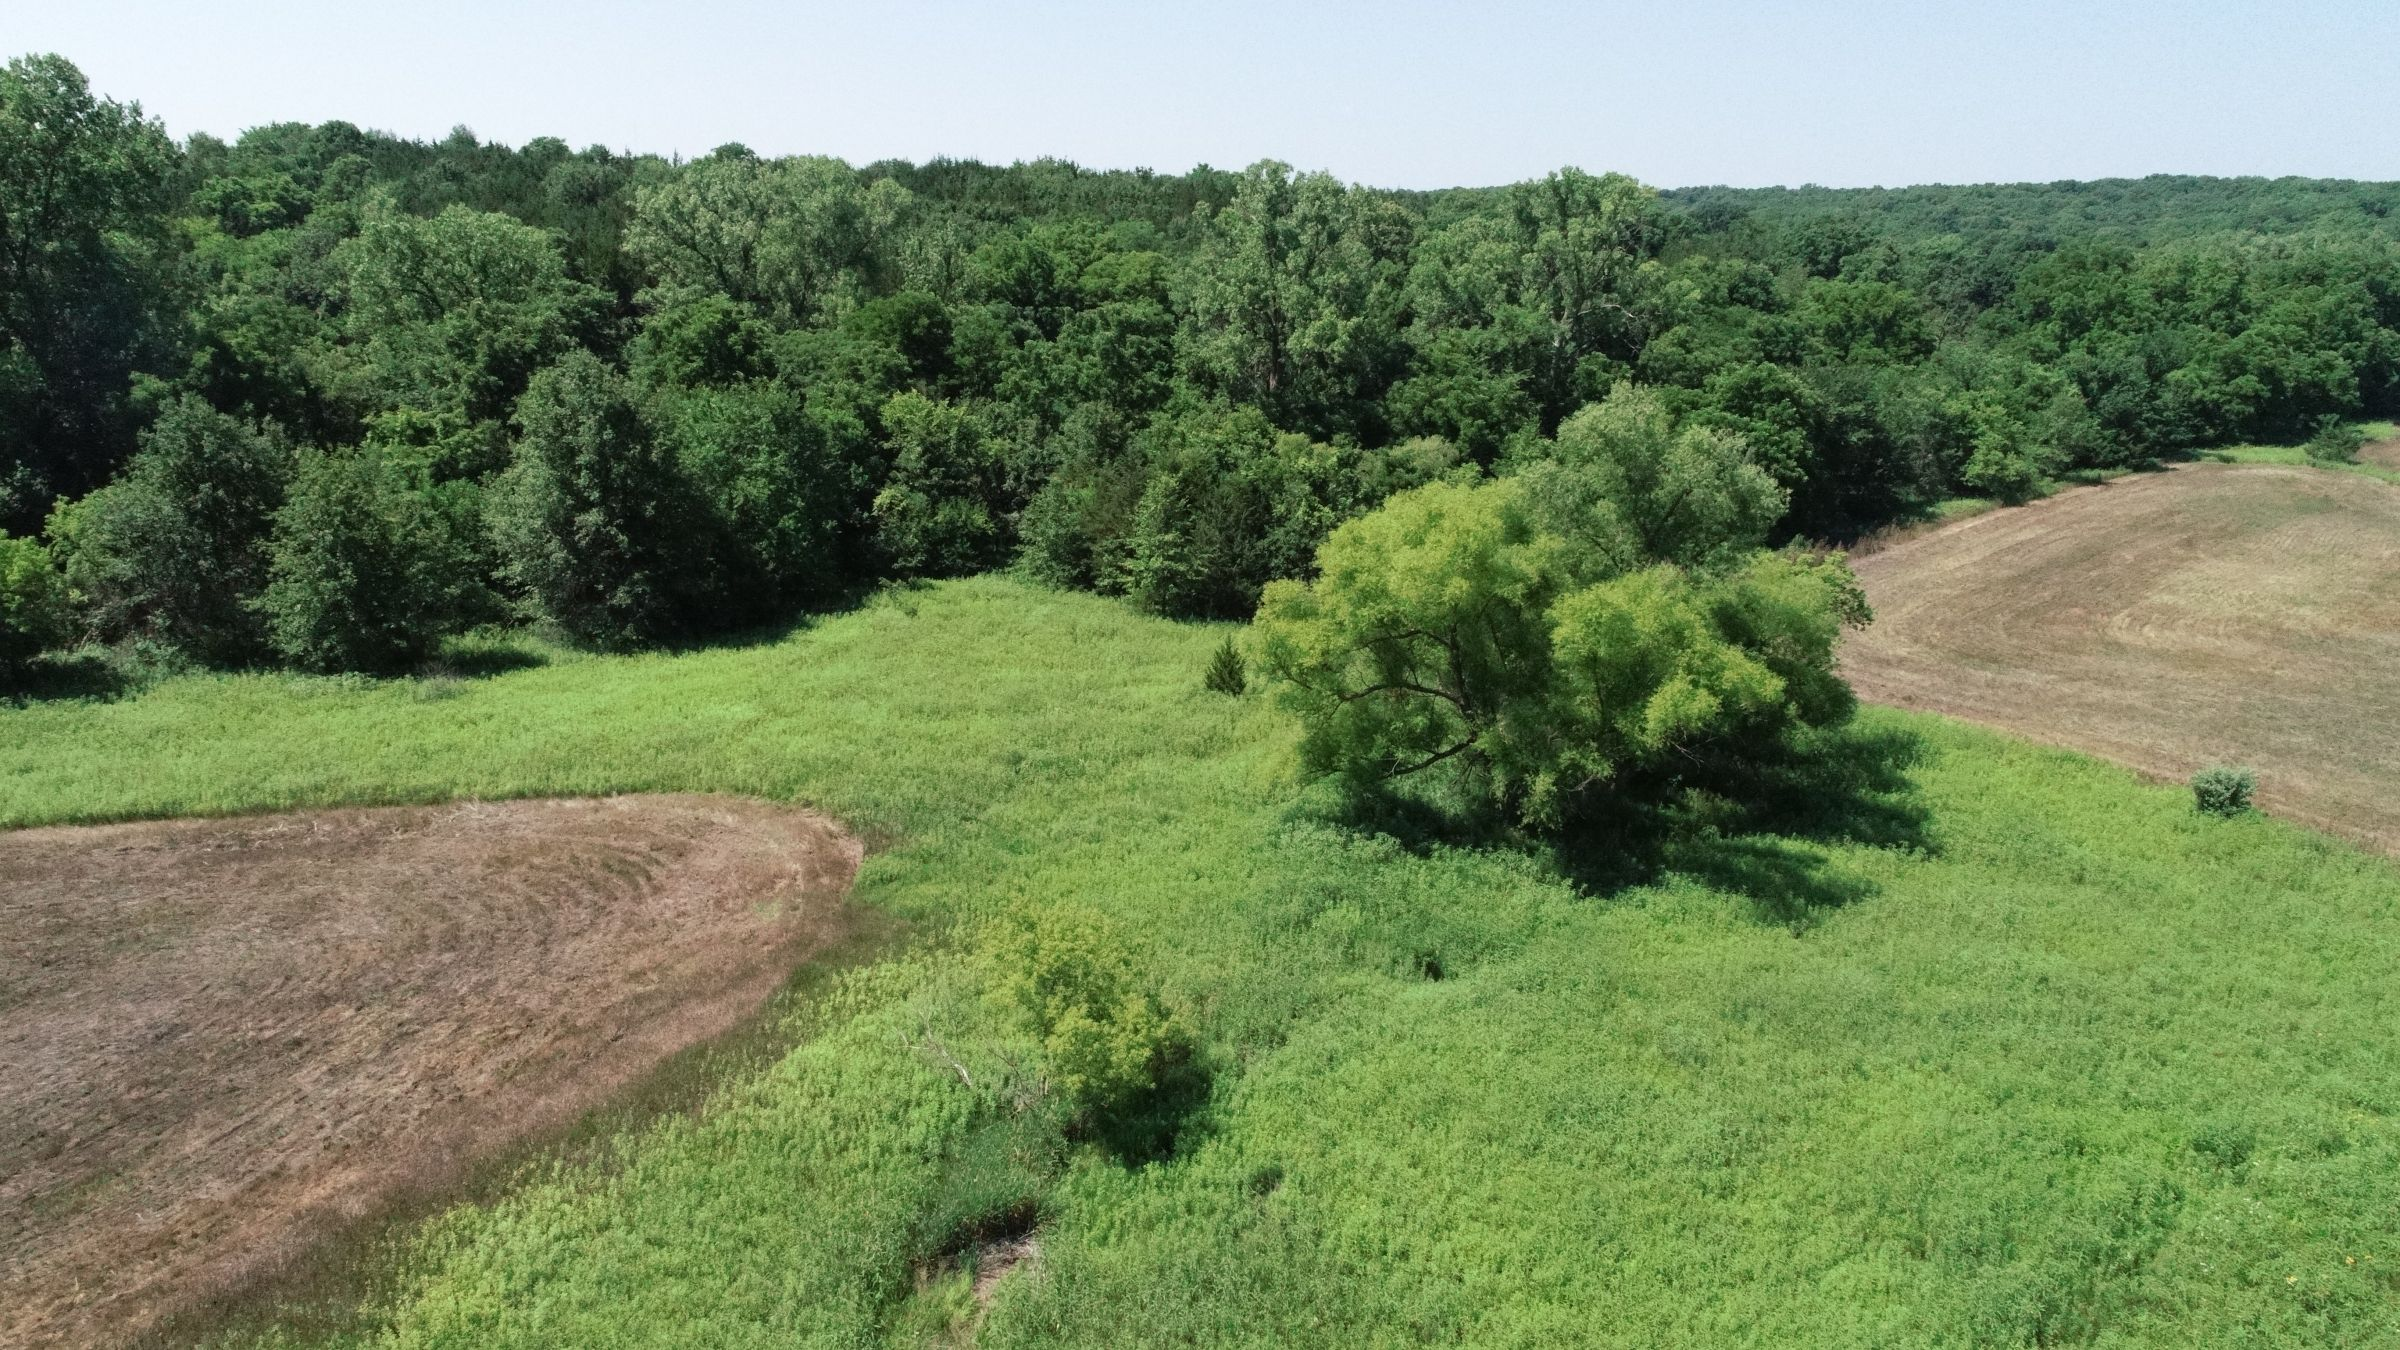 land-decatur-county-iowa-40-acres-listing-number-15069-6-2020-07-13-190432.JPG